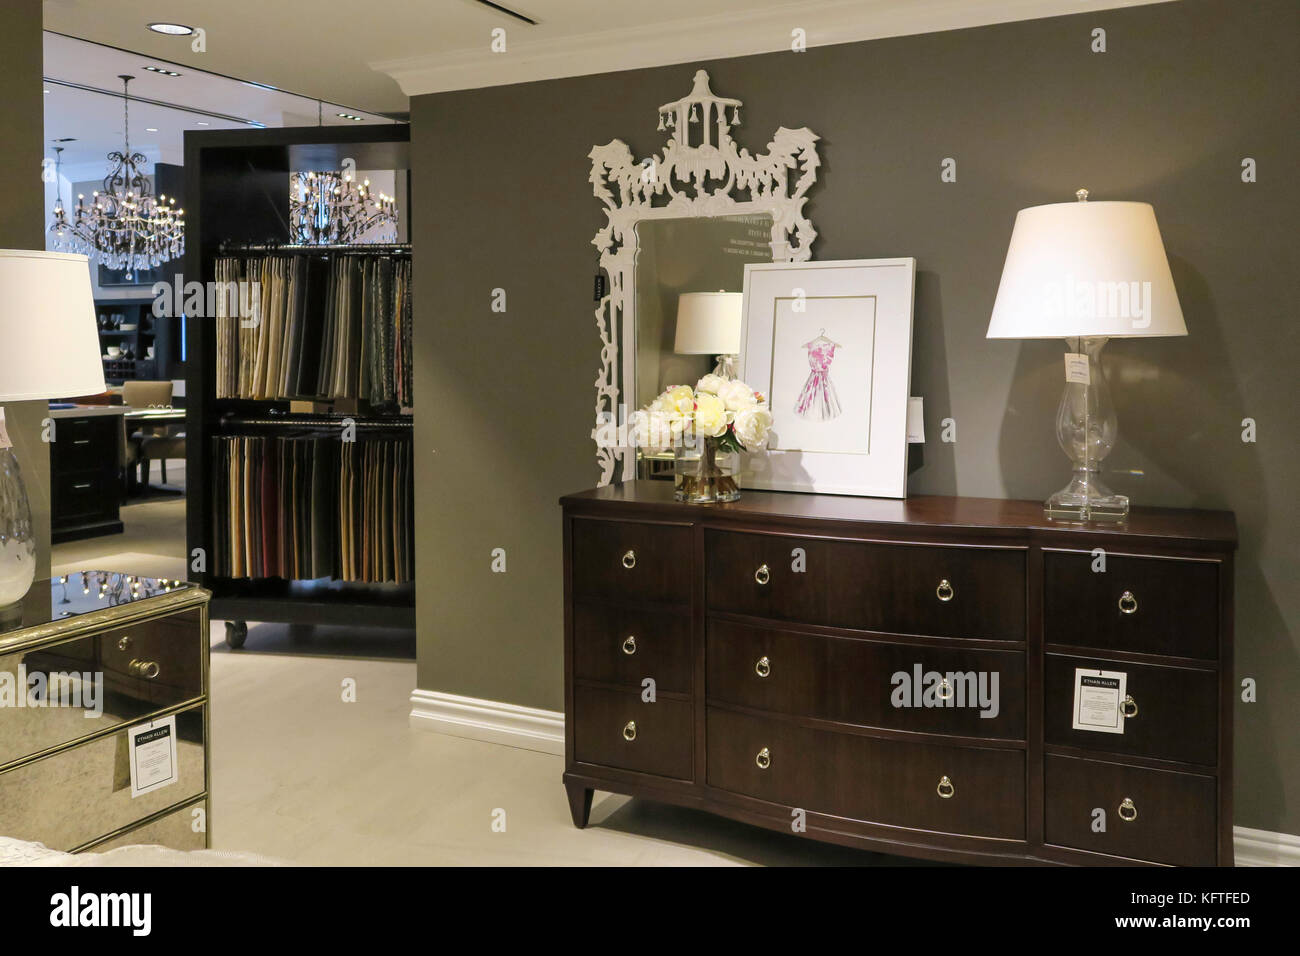 High quality furnishings stock photos high quality for Furniture stores nyc